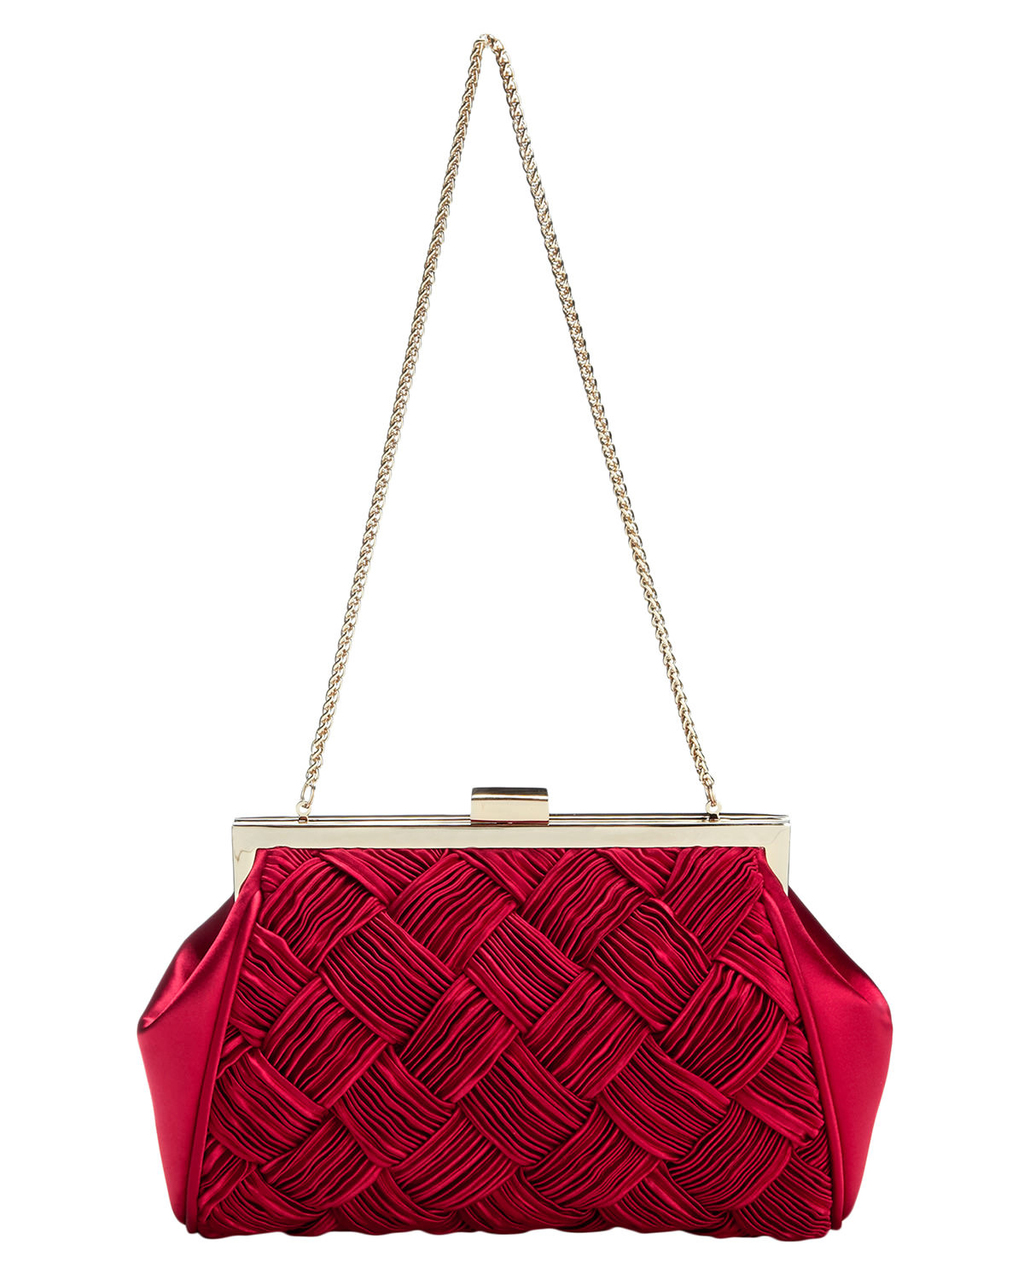 Alexie Pleated Satin Bag - predominant colour: true red; secondary colour: gold; occasions: evening, occasion; type of pattern: standard; style: clutch; length: shoulder (tucks under arm); size: small; material: satin; embellishment: pleated; pattern: plain; finish: plain; season: s/s 2016; wardrobe: event